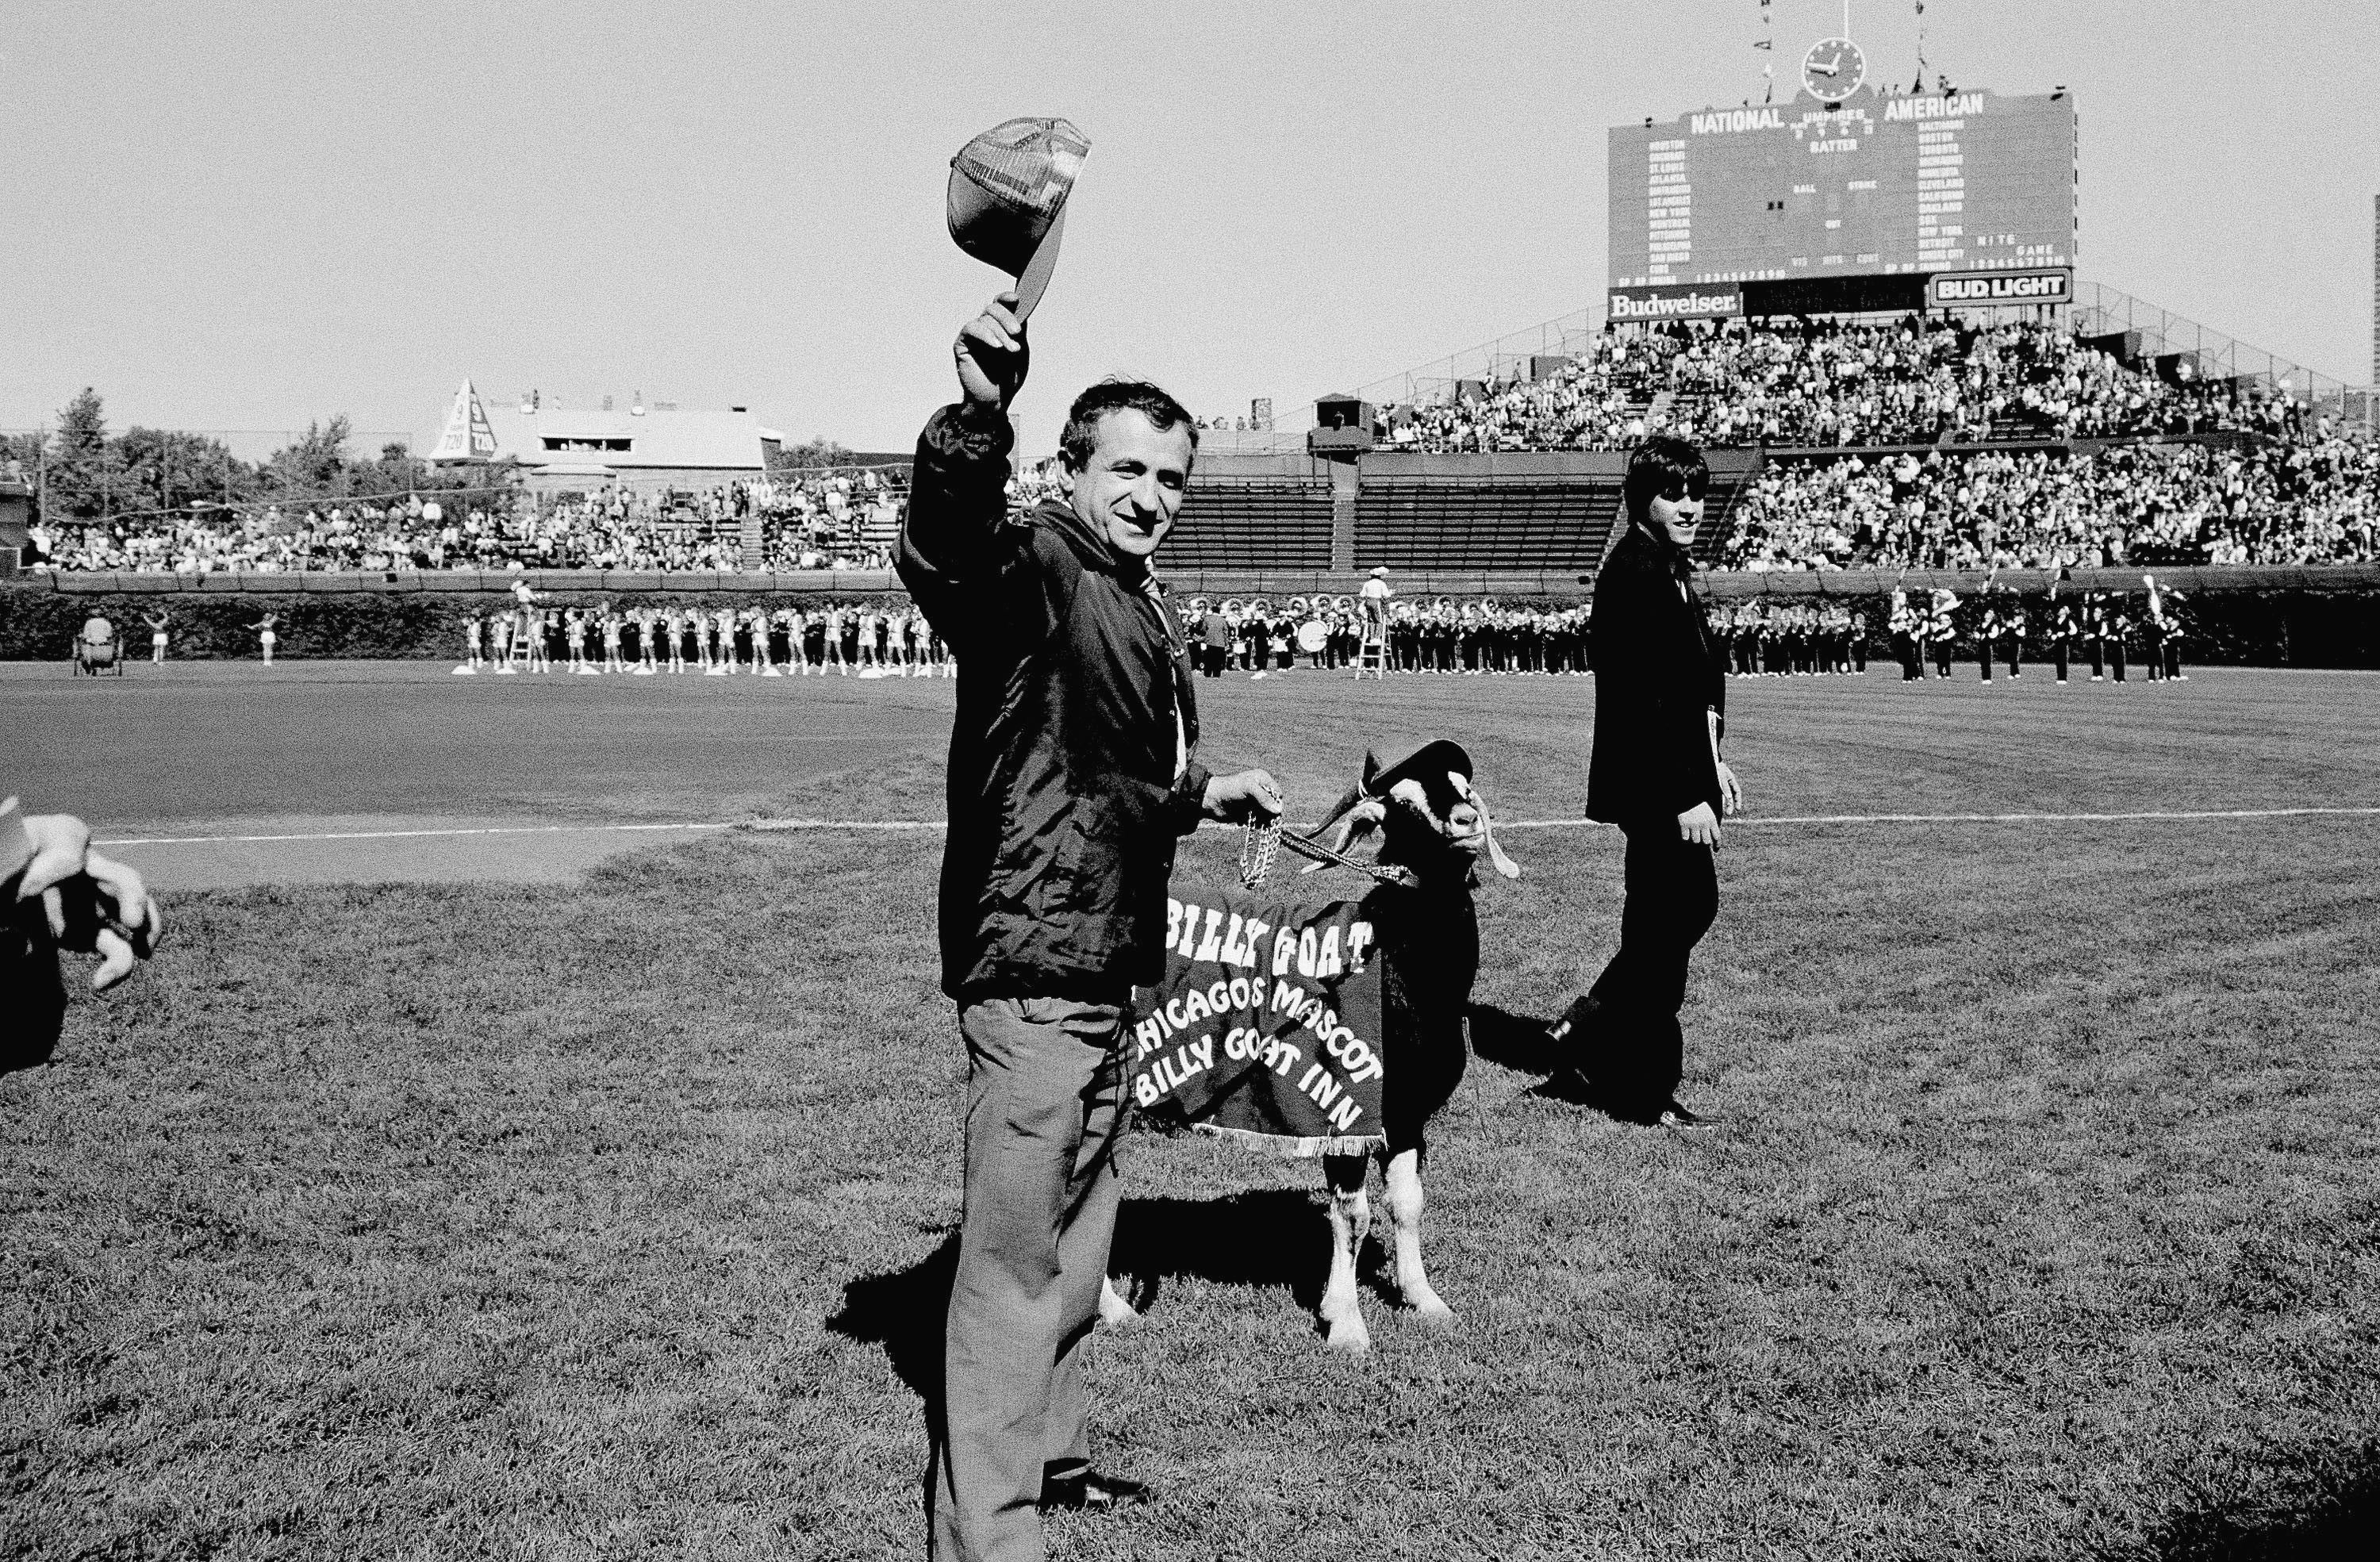 FILE - In this Oct. 2, 1984 file photo, Sam Sianis, owner of the Billy Goat Tavern in Chicago, acknowledges the crowd along with his goat prior to a National League playoff game between the San Diego Padres and the Cubs in Chicago. Cubs fans Erik Williams